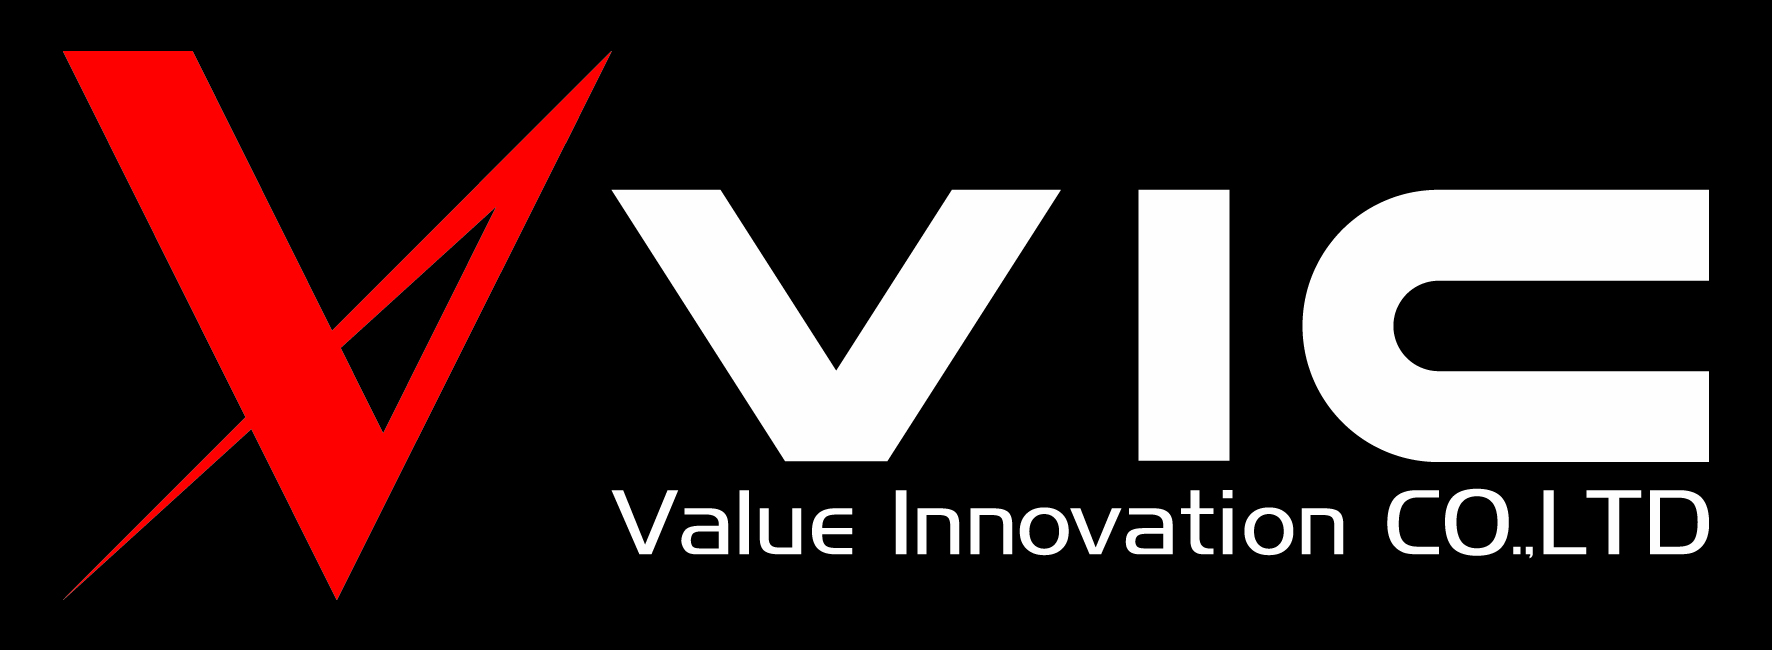 บริษัทValue Innovation CO.,LTD.